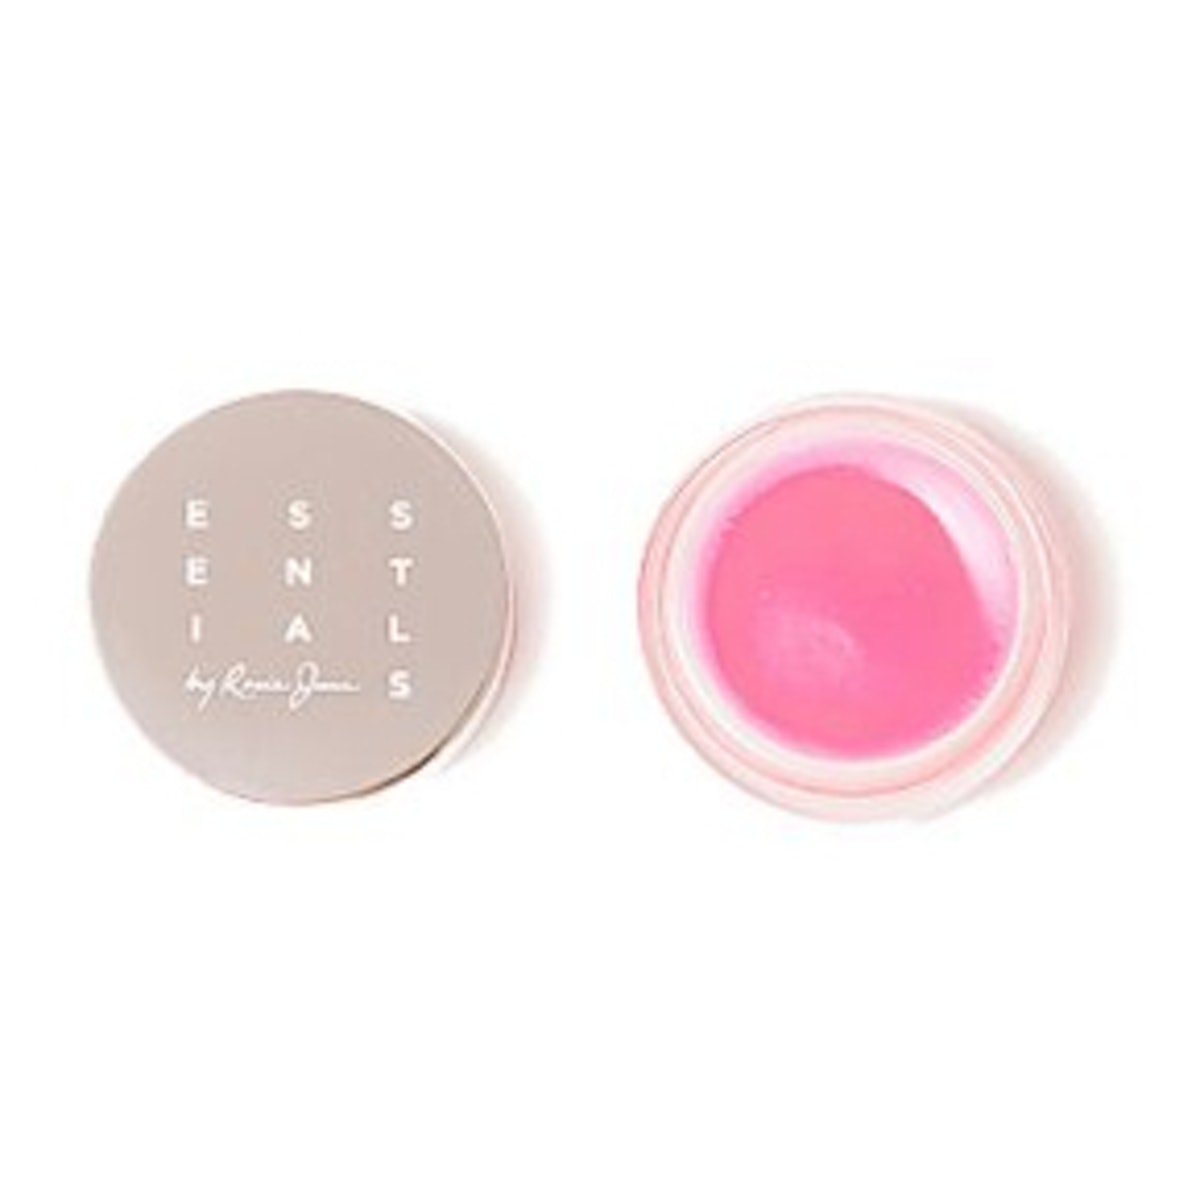 Essentials Cheek and Lip Gloss in Rose